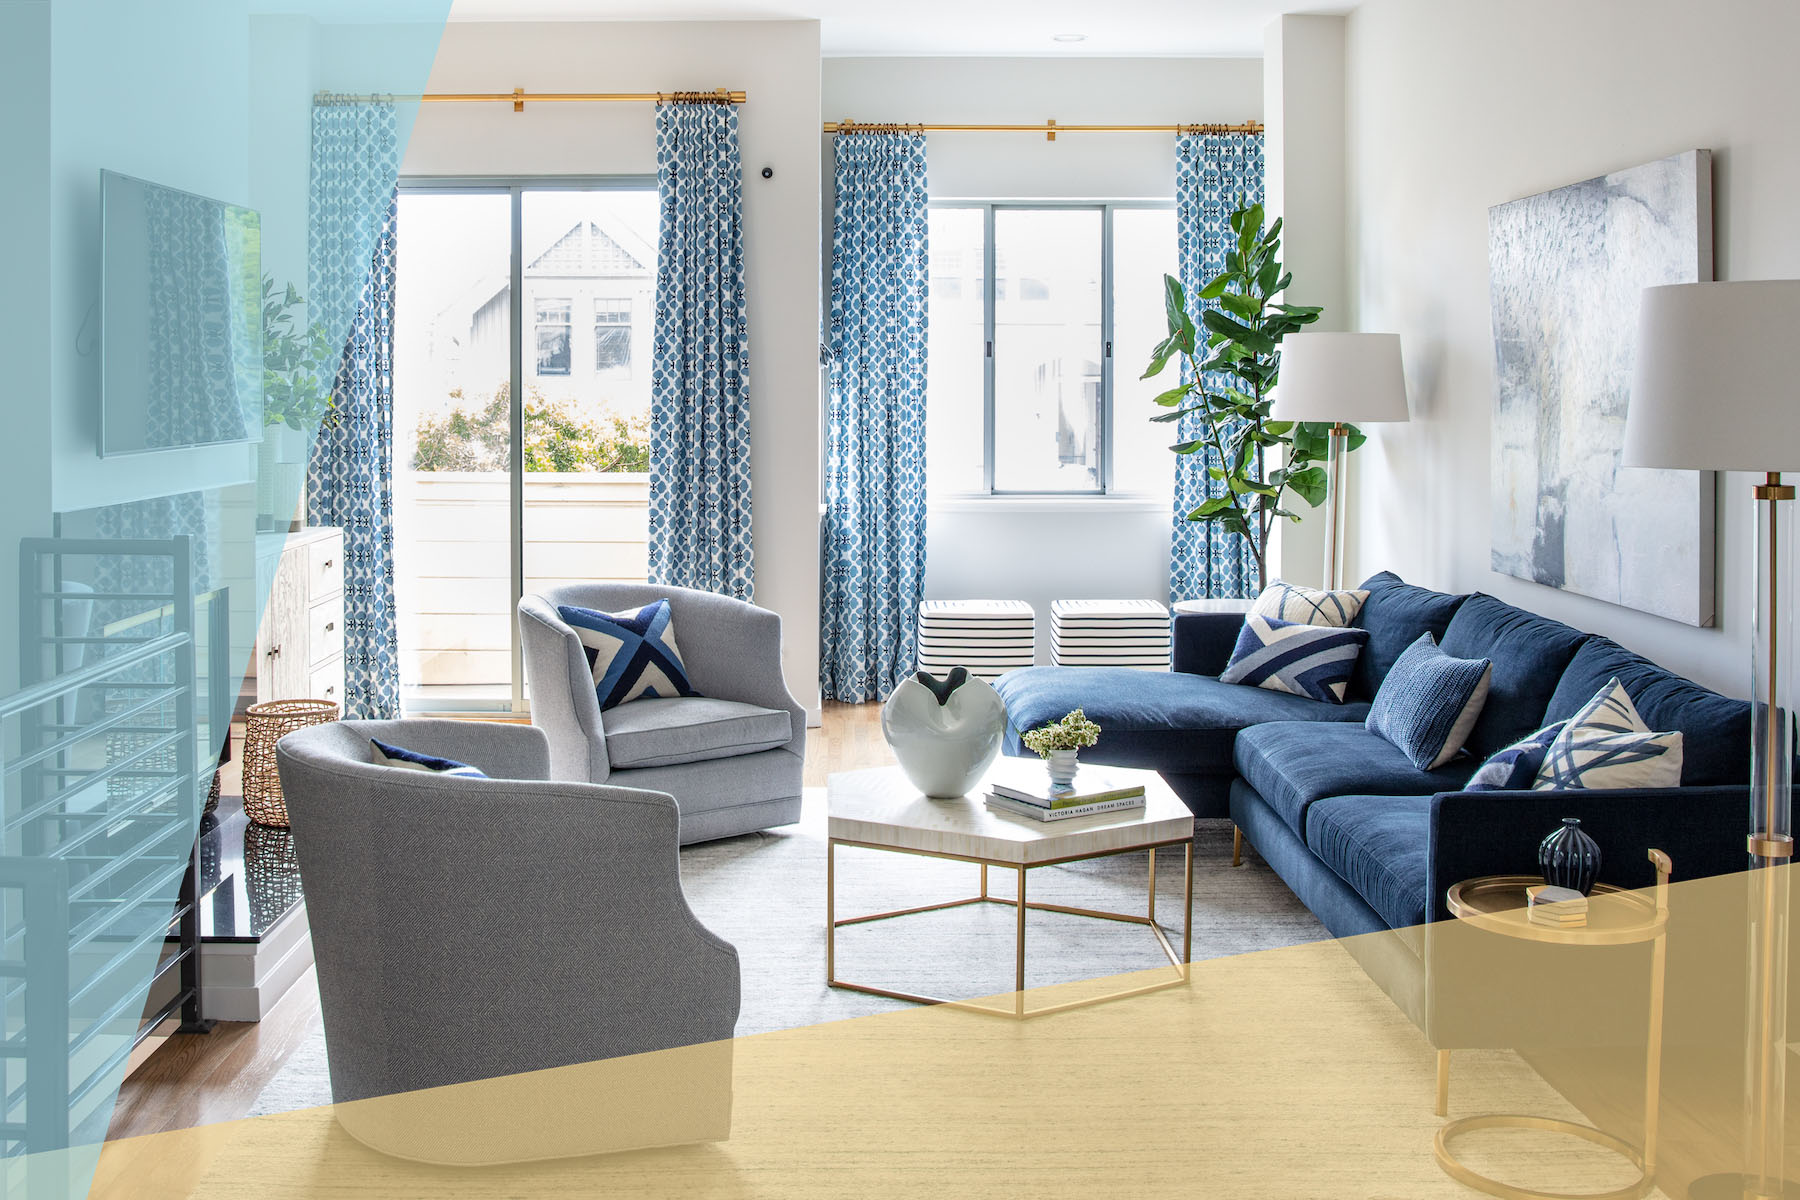 Home Makeover with Patterns, Living Room